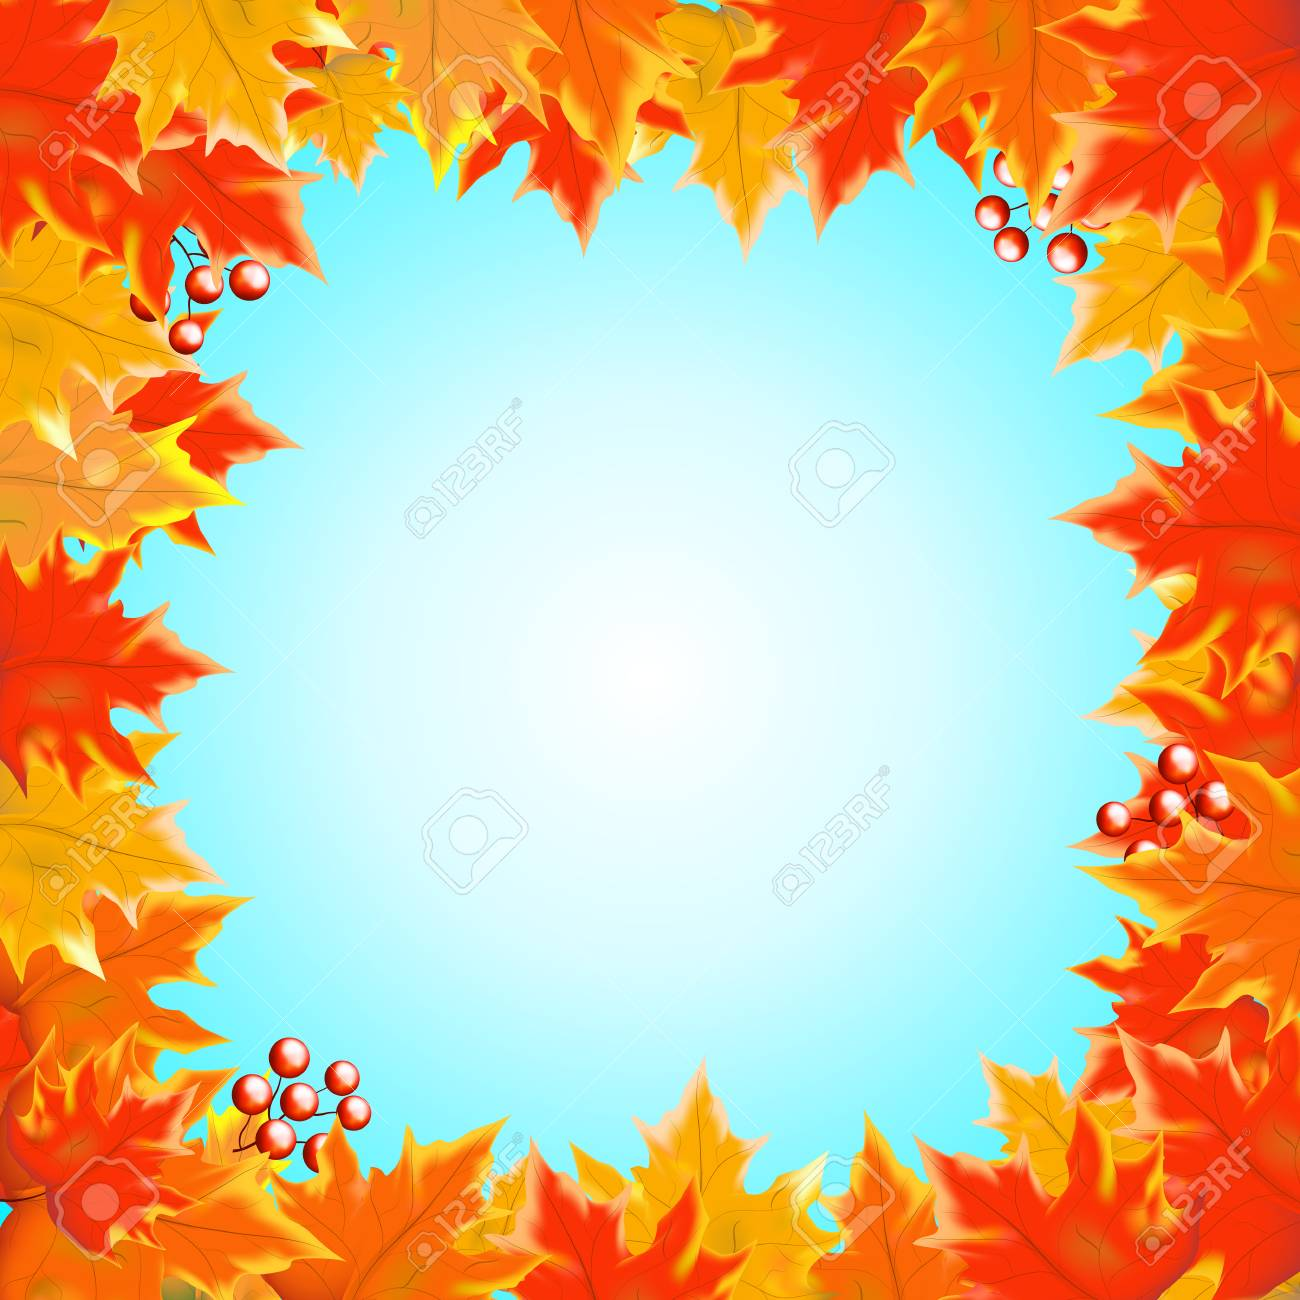 autumn background with empty blank space for text and boarder